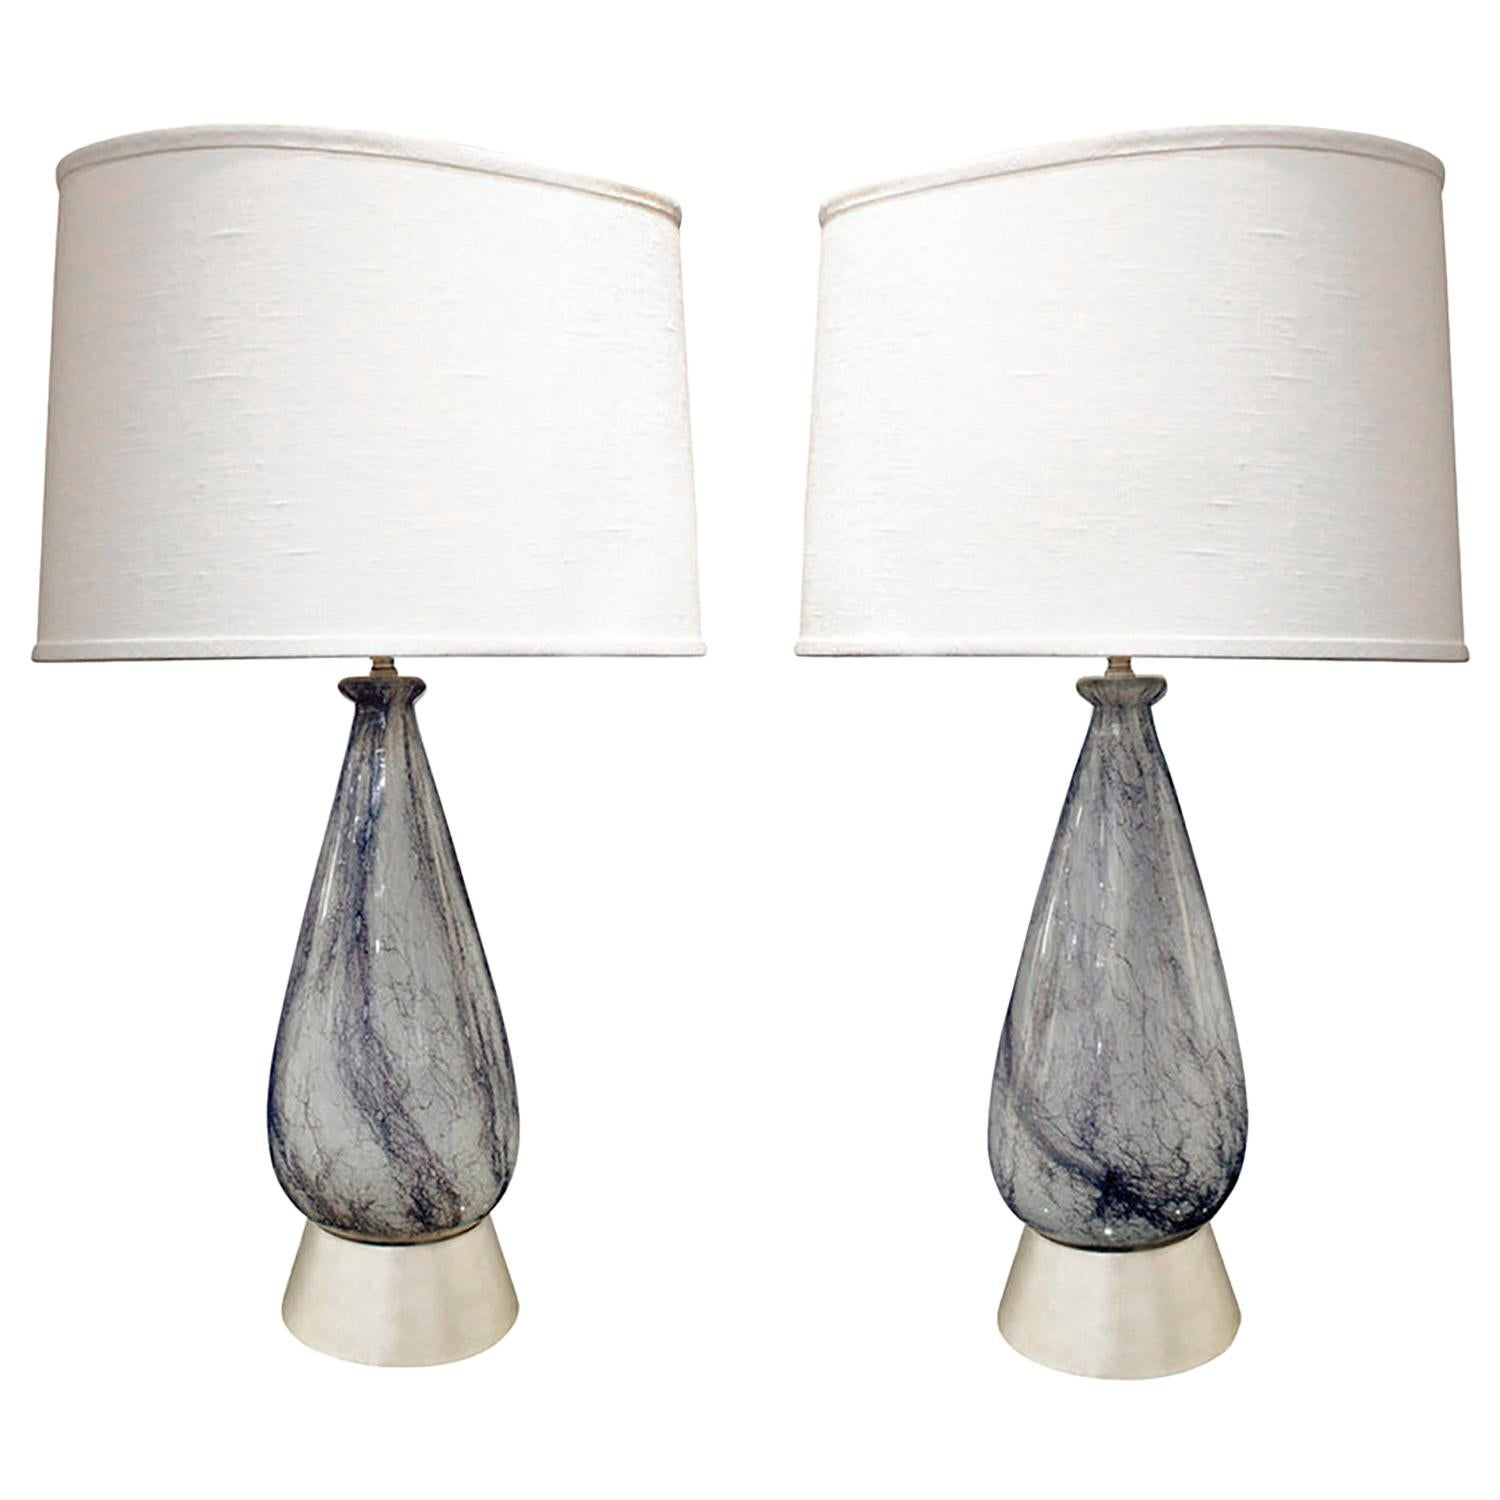 Pair of Hand Blown Glass Table Lamps Attributed to Ercole Barovier, 1930s